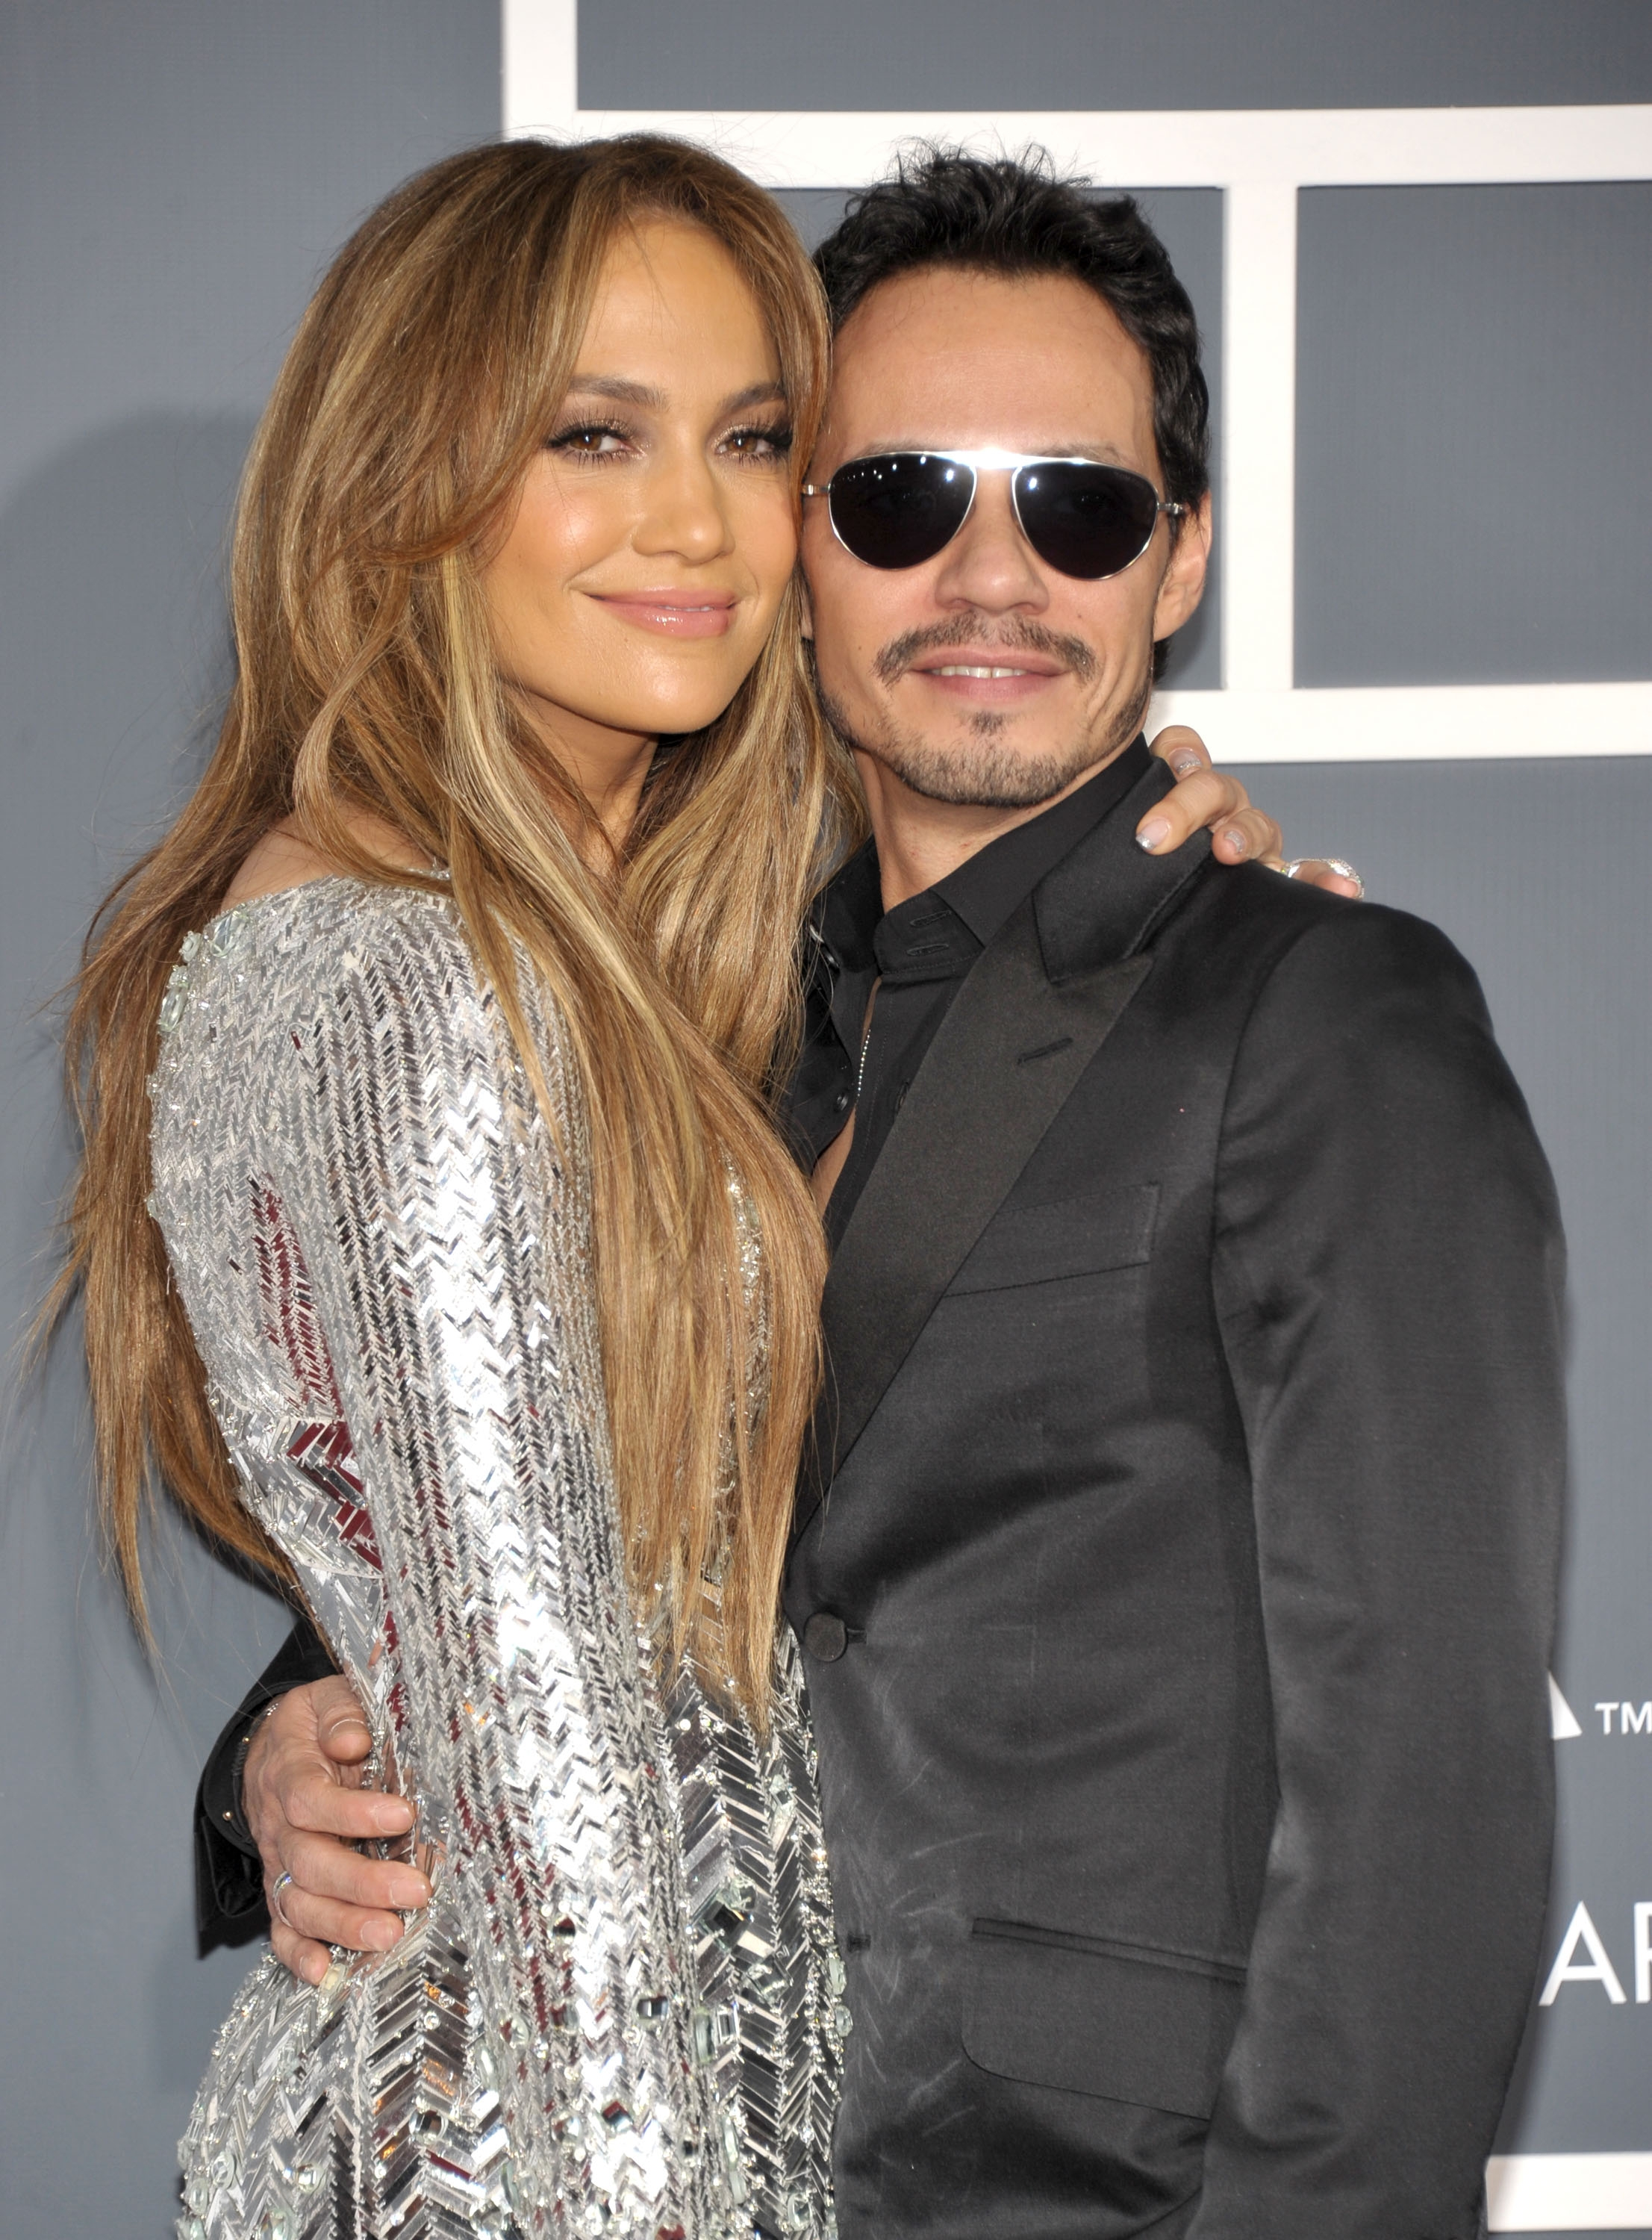 Jennifer Lopez & Marc Anthony Team Up With Simon Fuller For New Television Show   Access Online